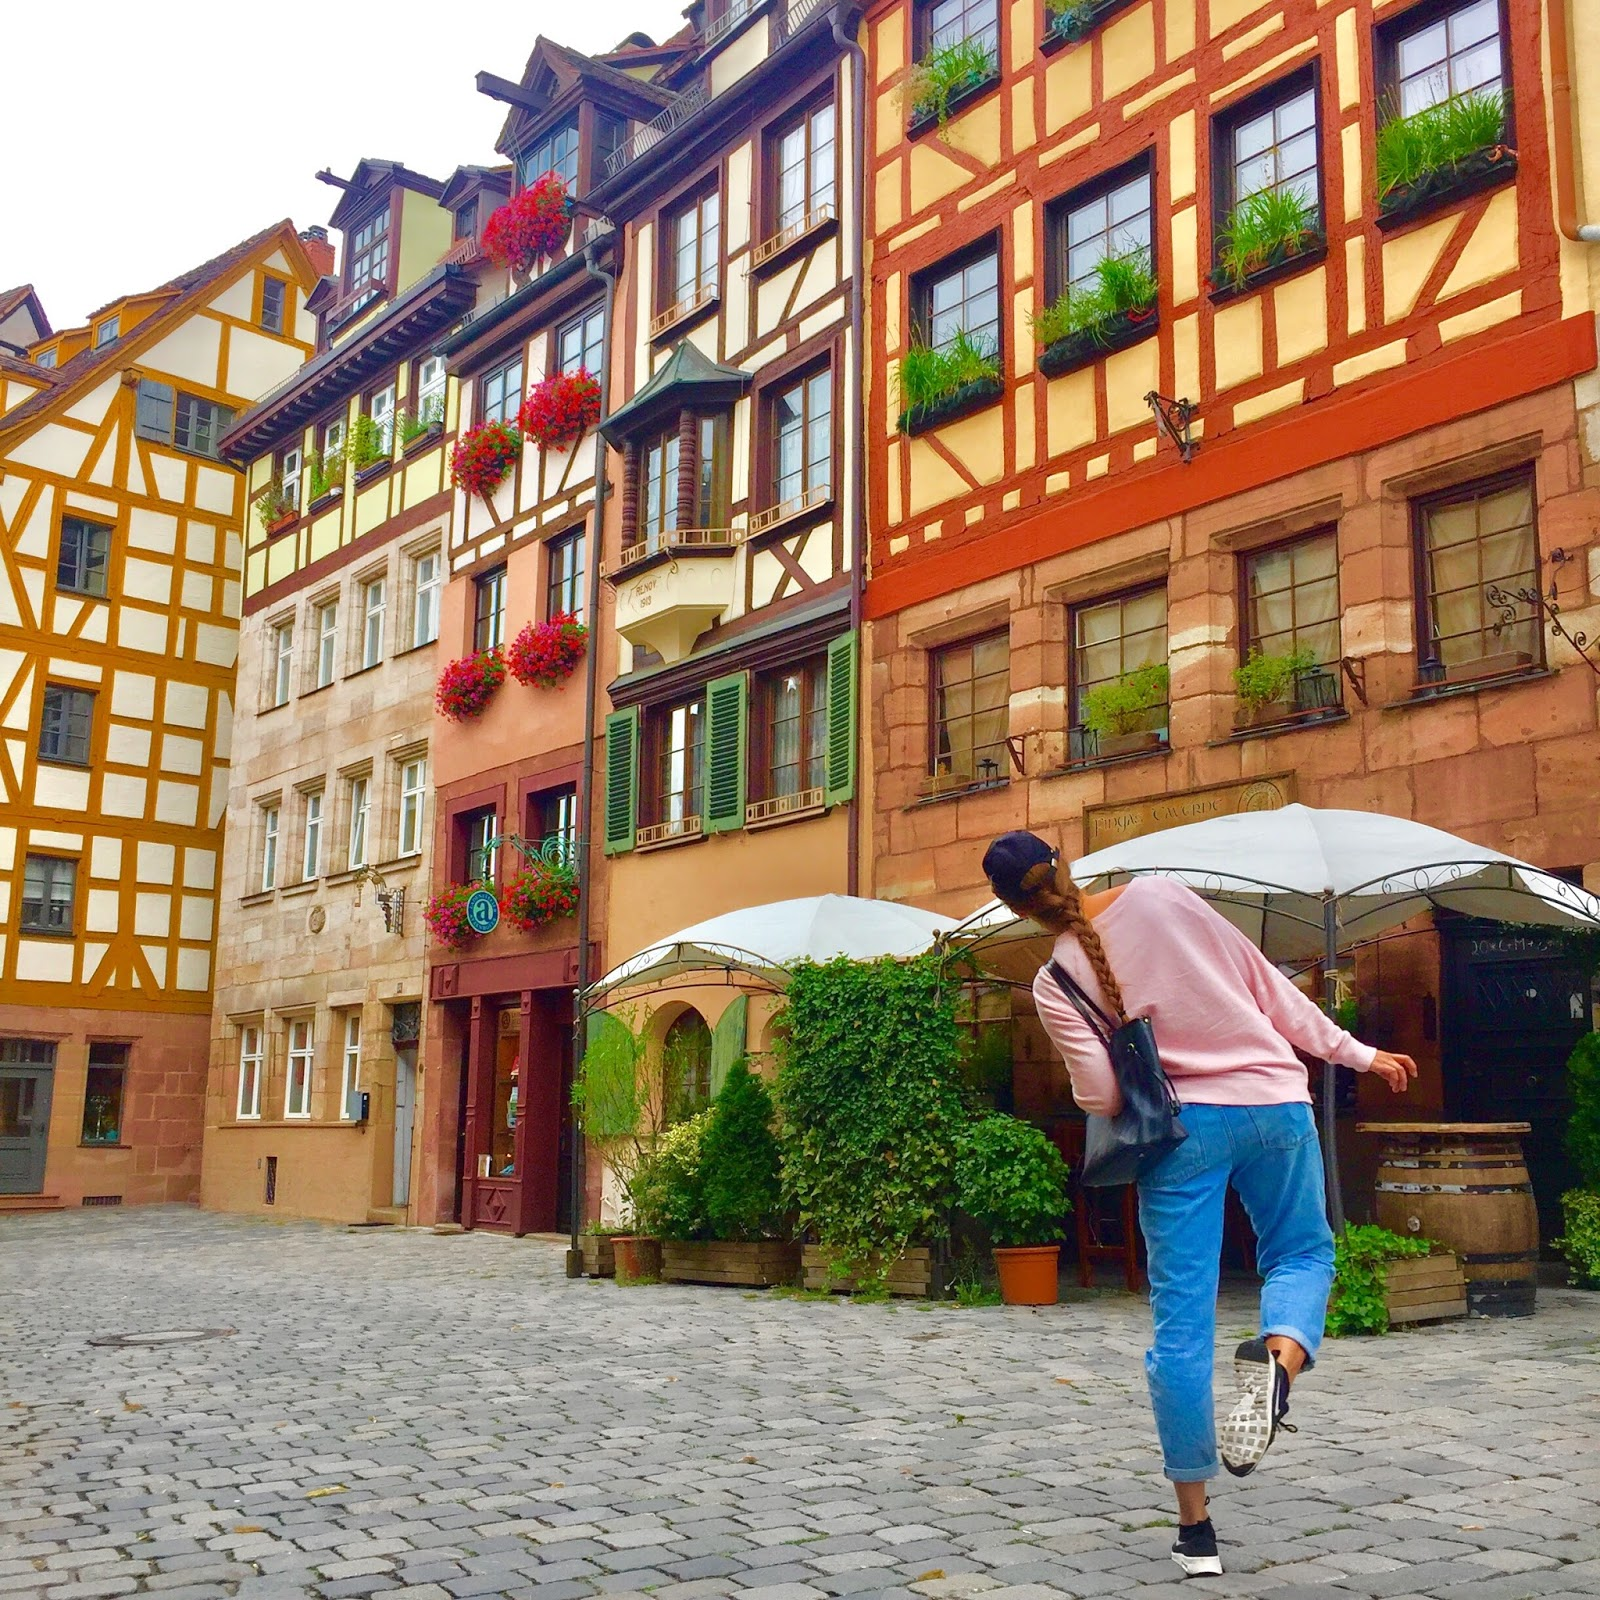 Pretty street in Nuremberg with colourful medieval architecture